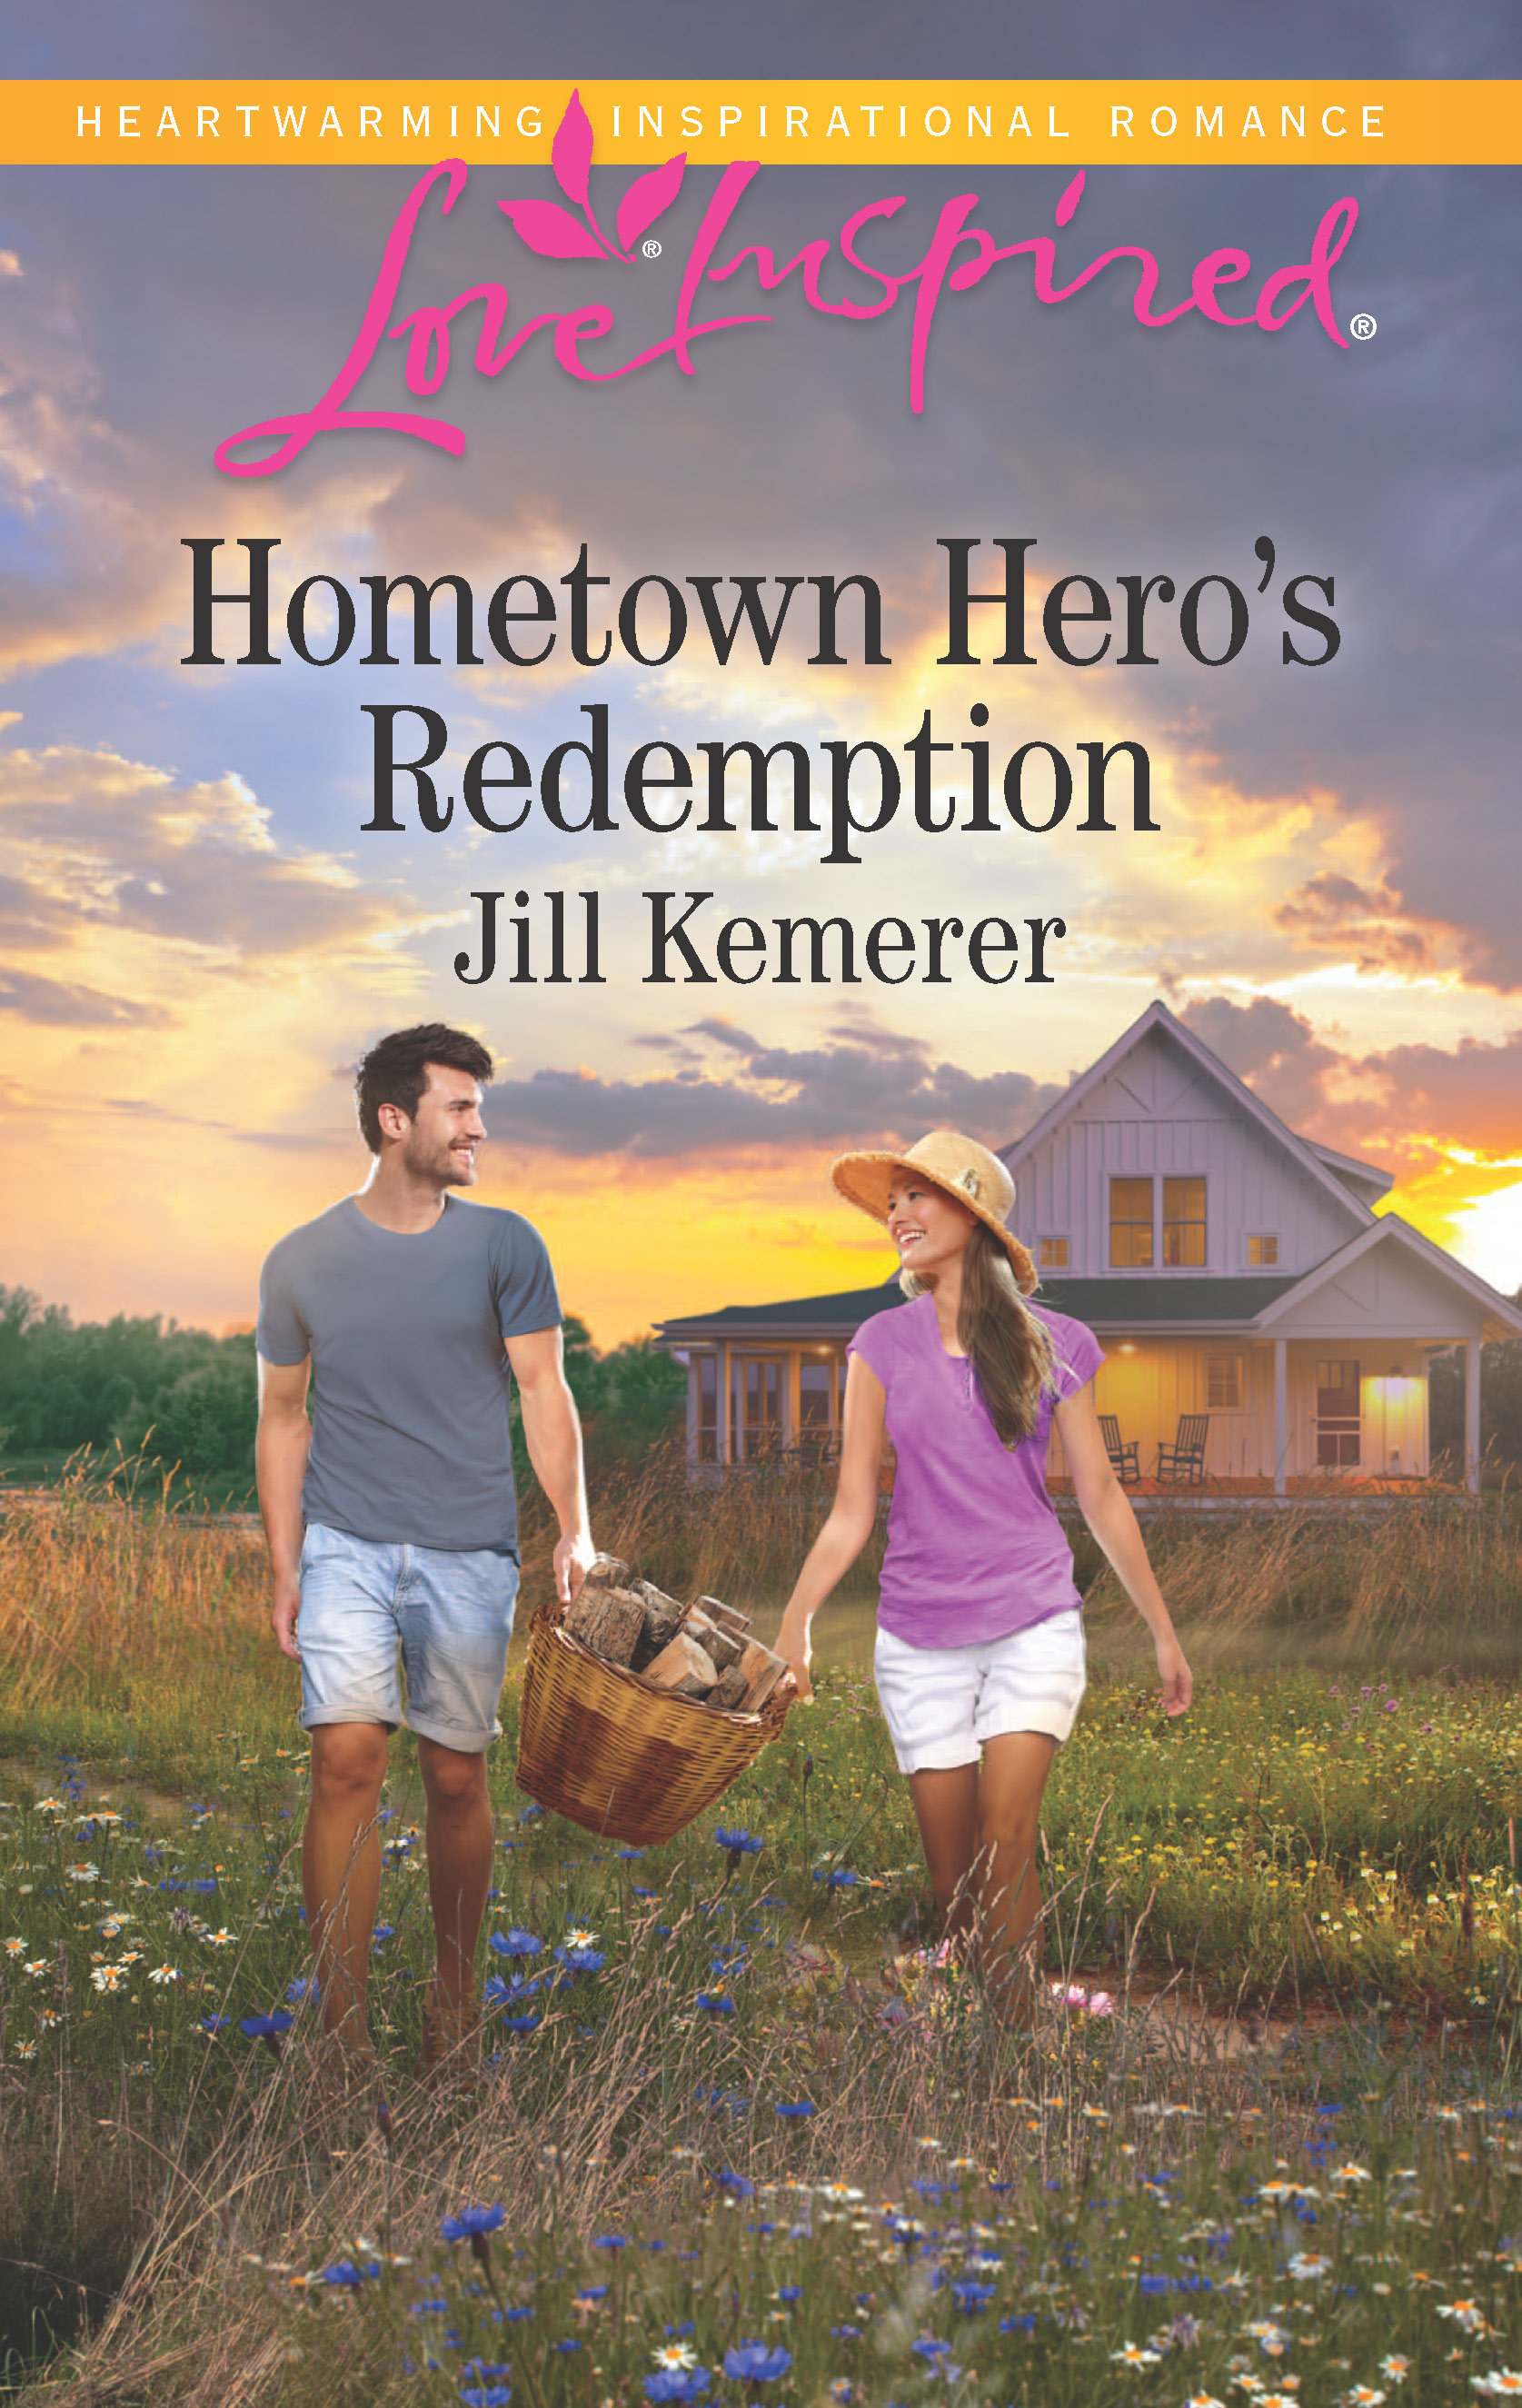 Cover Reveal! Hometown Hero's Redemption